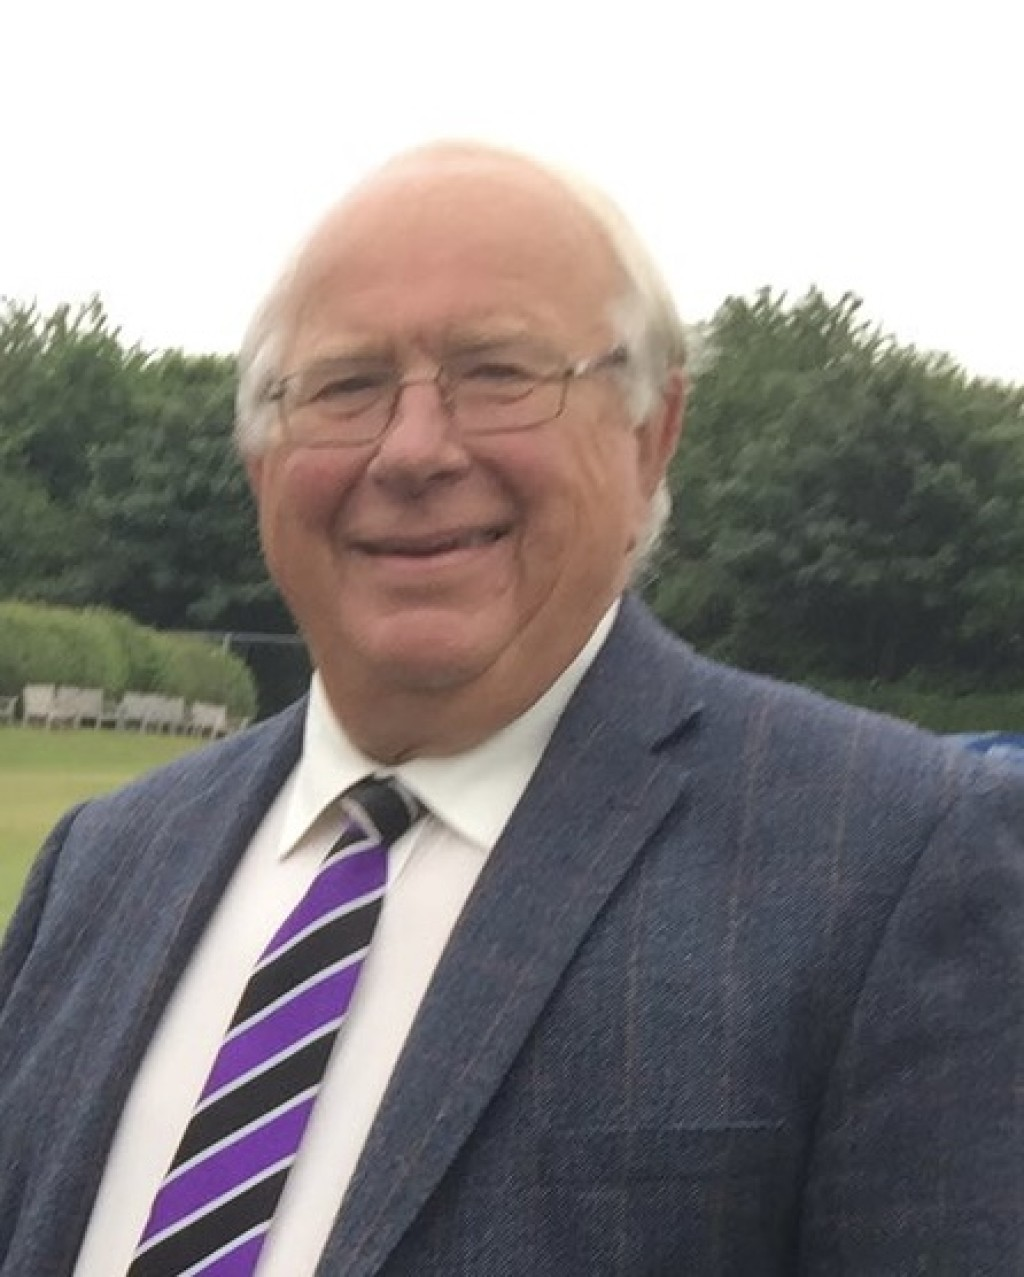 A message from our Chairman, David Bailey